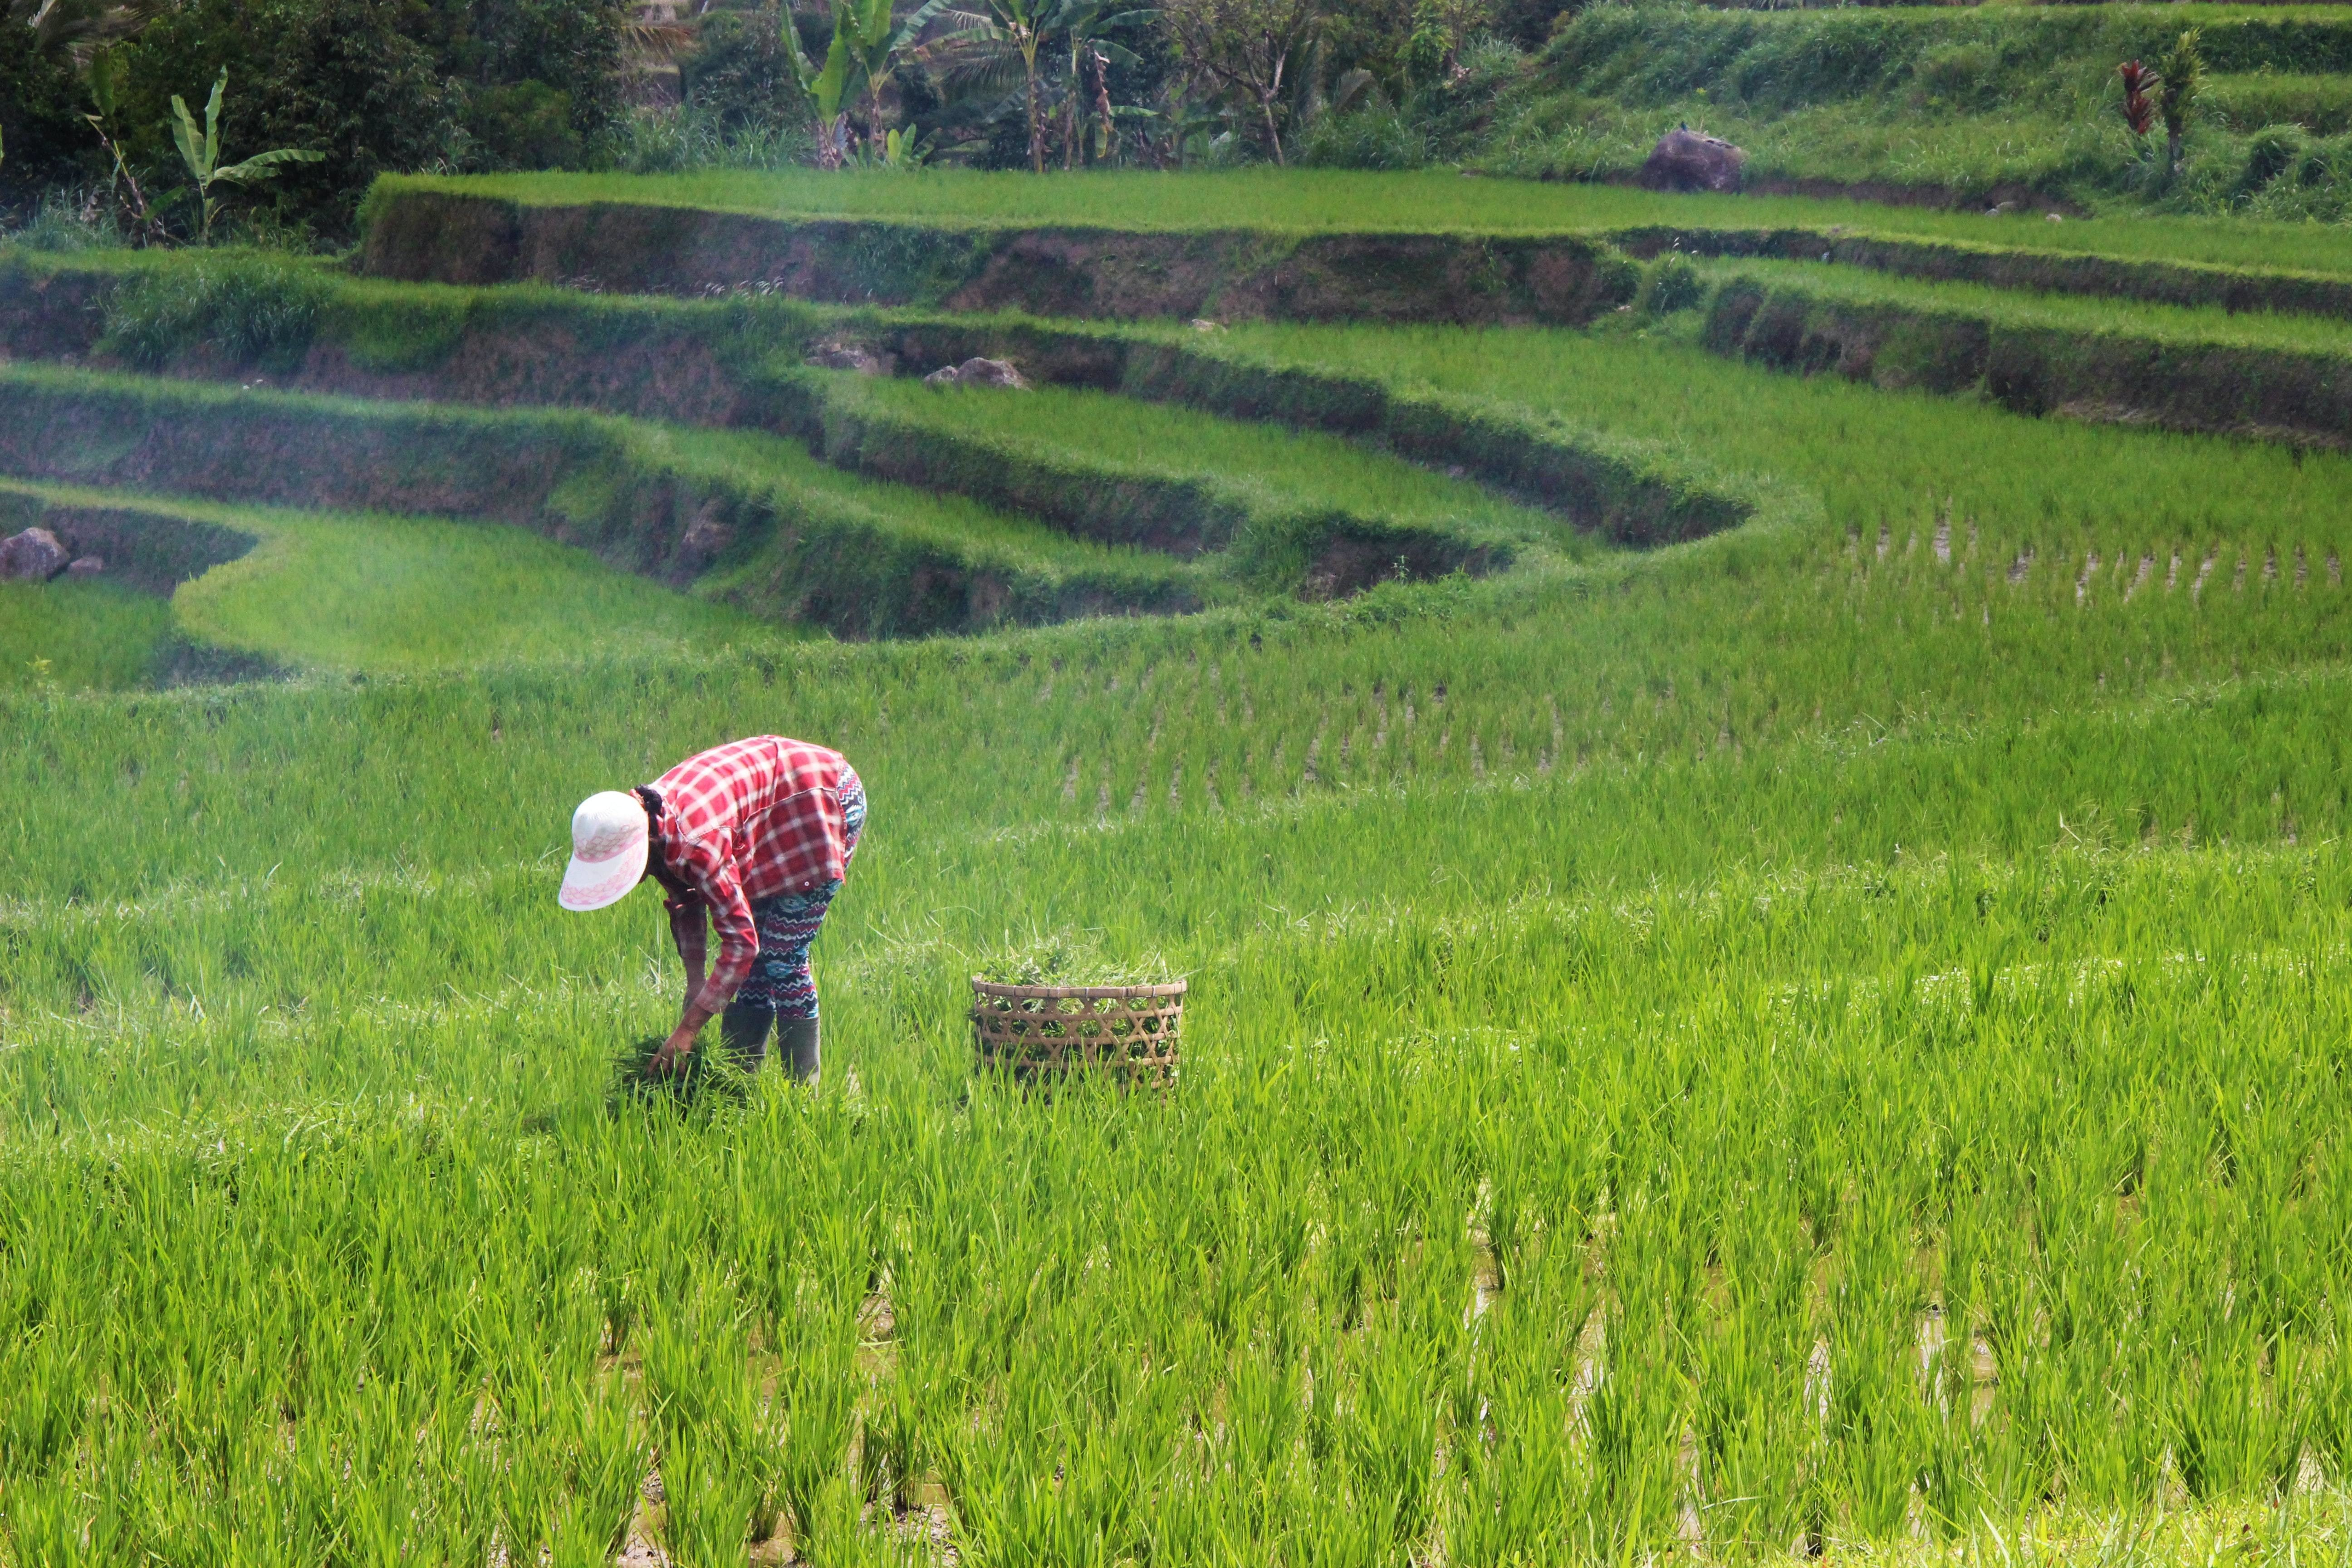 The World Economic Forum's 100 Million Farmers platform aims to help transition one in every five farmers to create a tipping point for the sector.